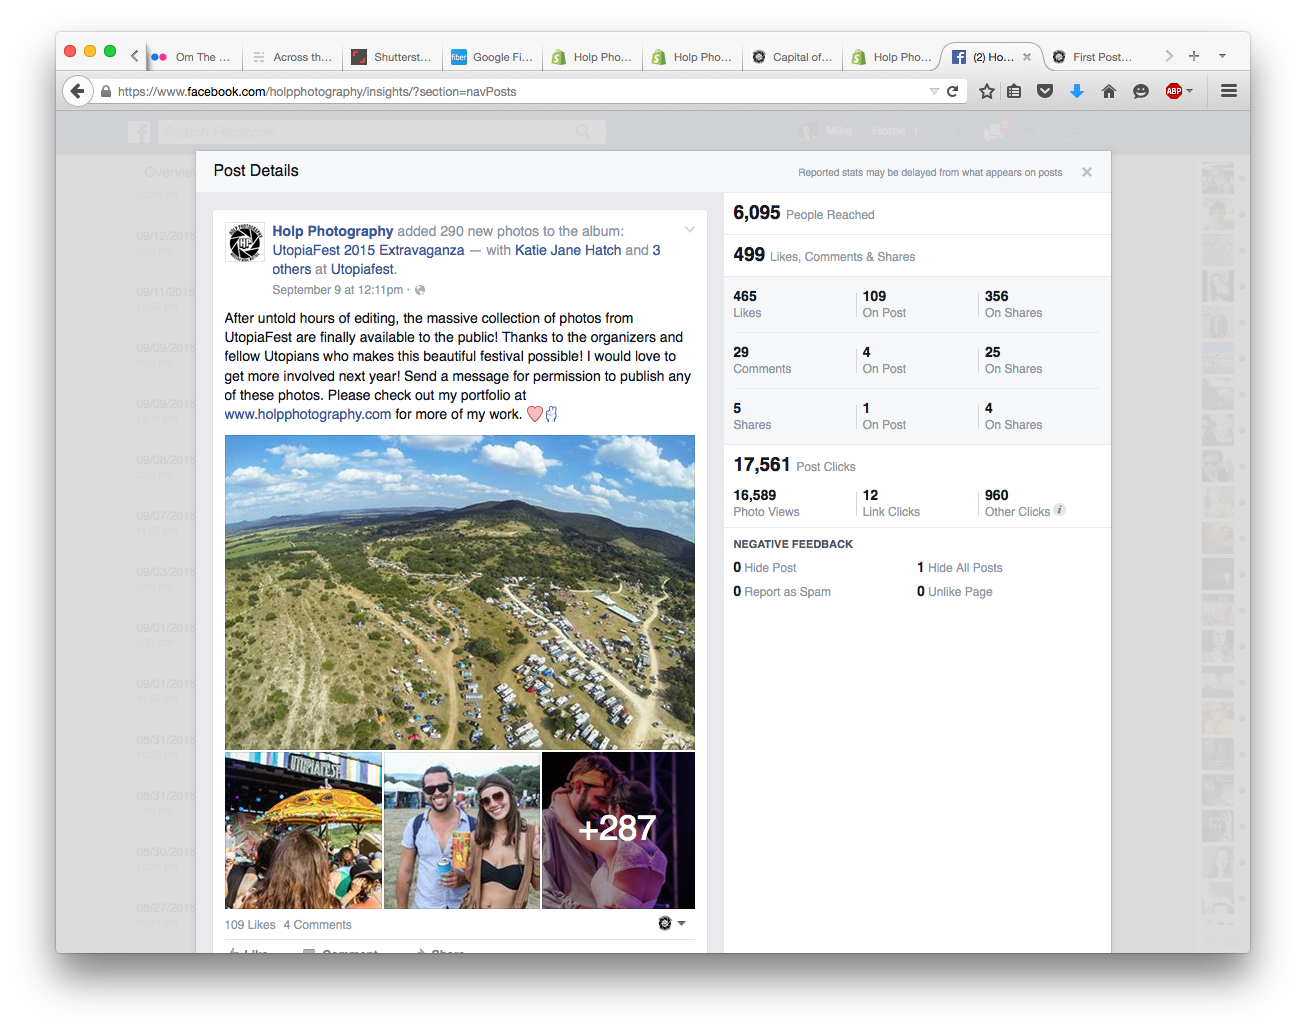 This photo album is a perfect example to illustrate my point. Through tagging friends in nearly 300 photos, the organic reach was over 17K post clicks! As a direct result, local media publications published my photos in various articles on UtopiaFest.